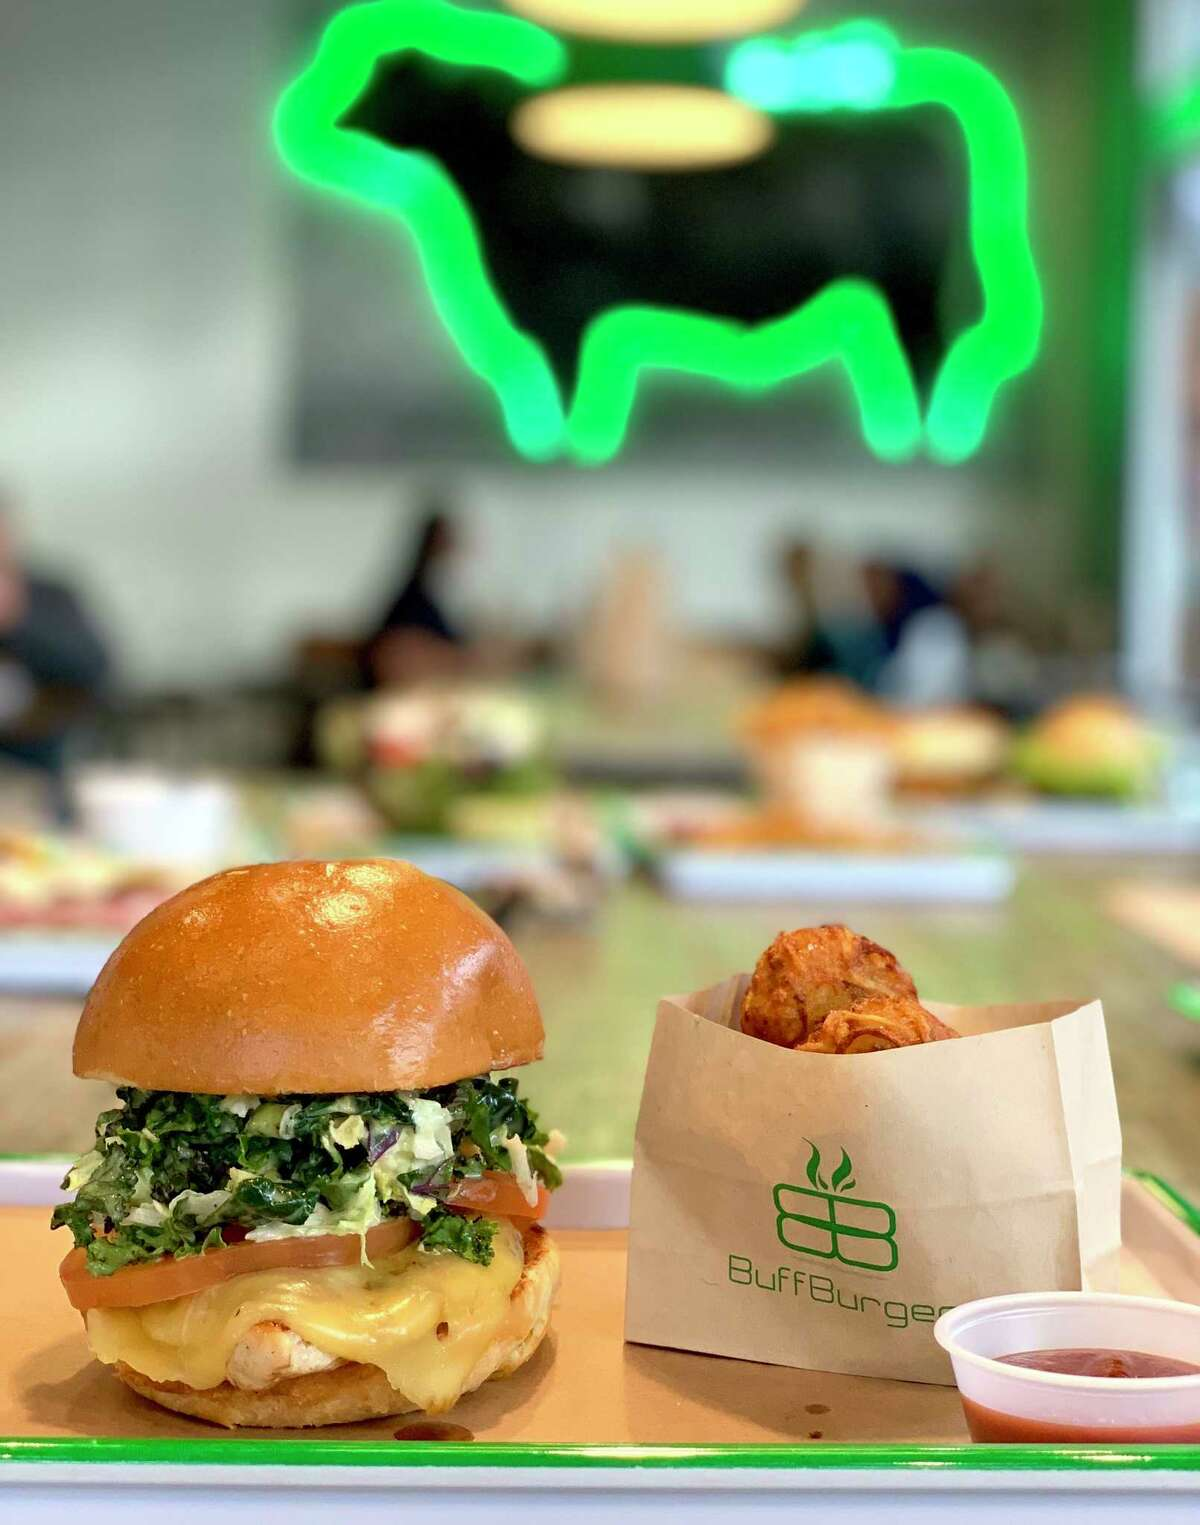 The Momo burger (grilled or buttermilk fried chicken with honey mustard kale slaw) at BuffBurger.